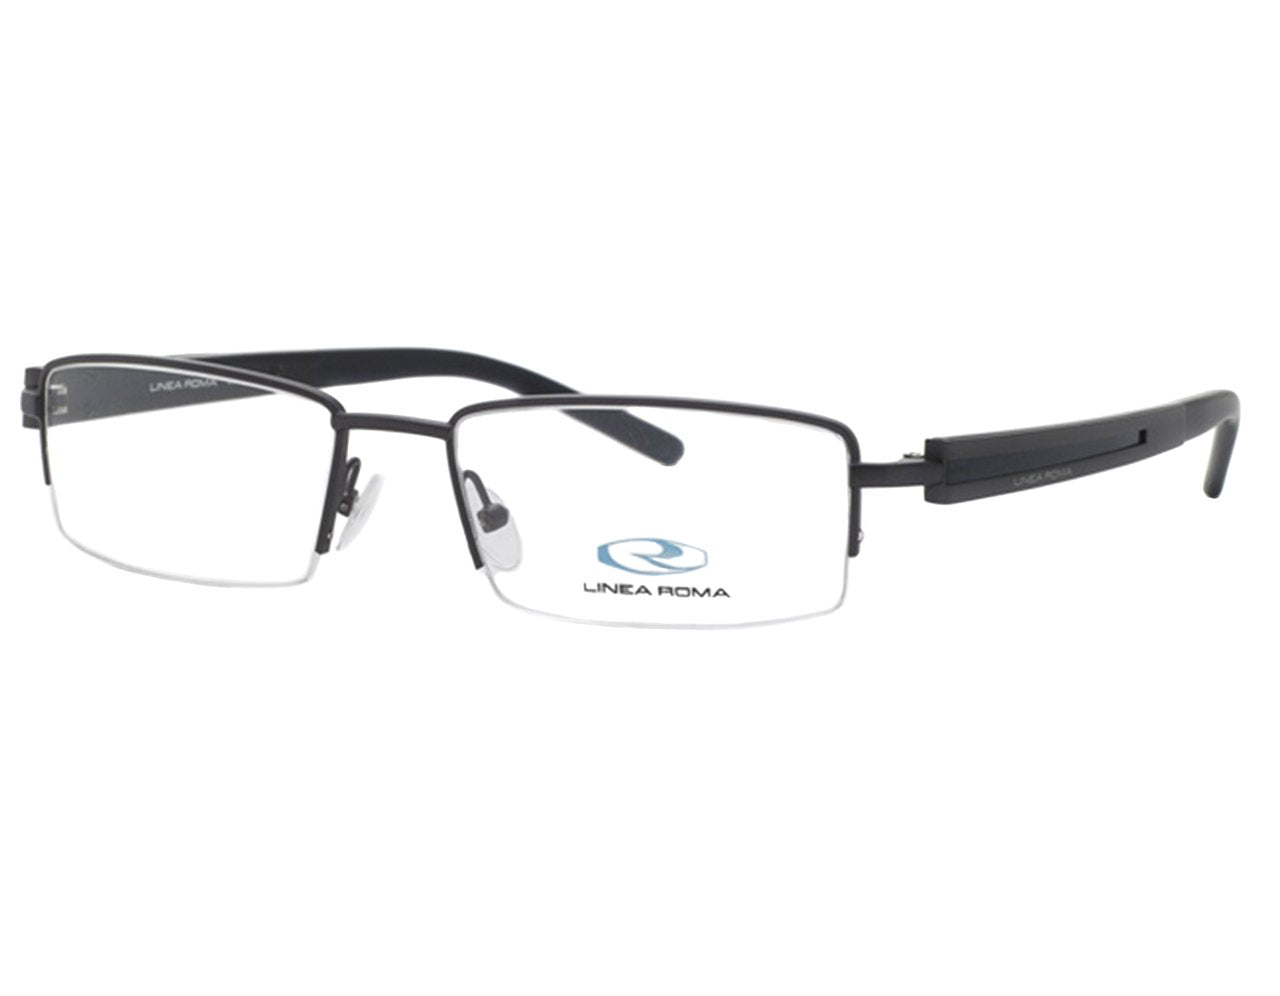 LINEA ROMA EYEWEAR:LINEA ROMA OPTICAL:ROB2-C4